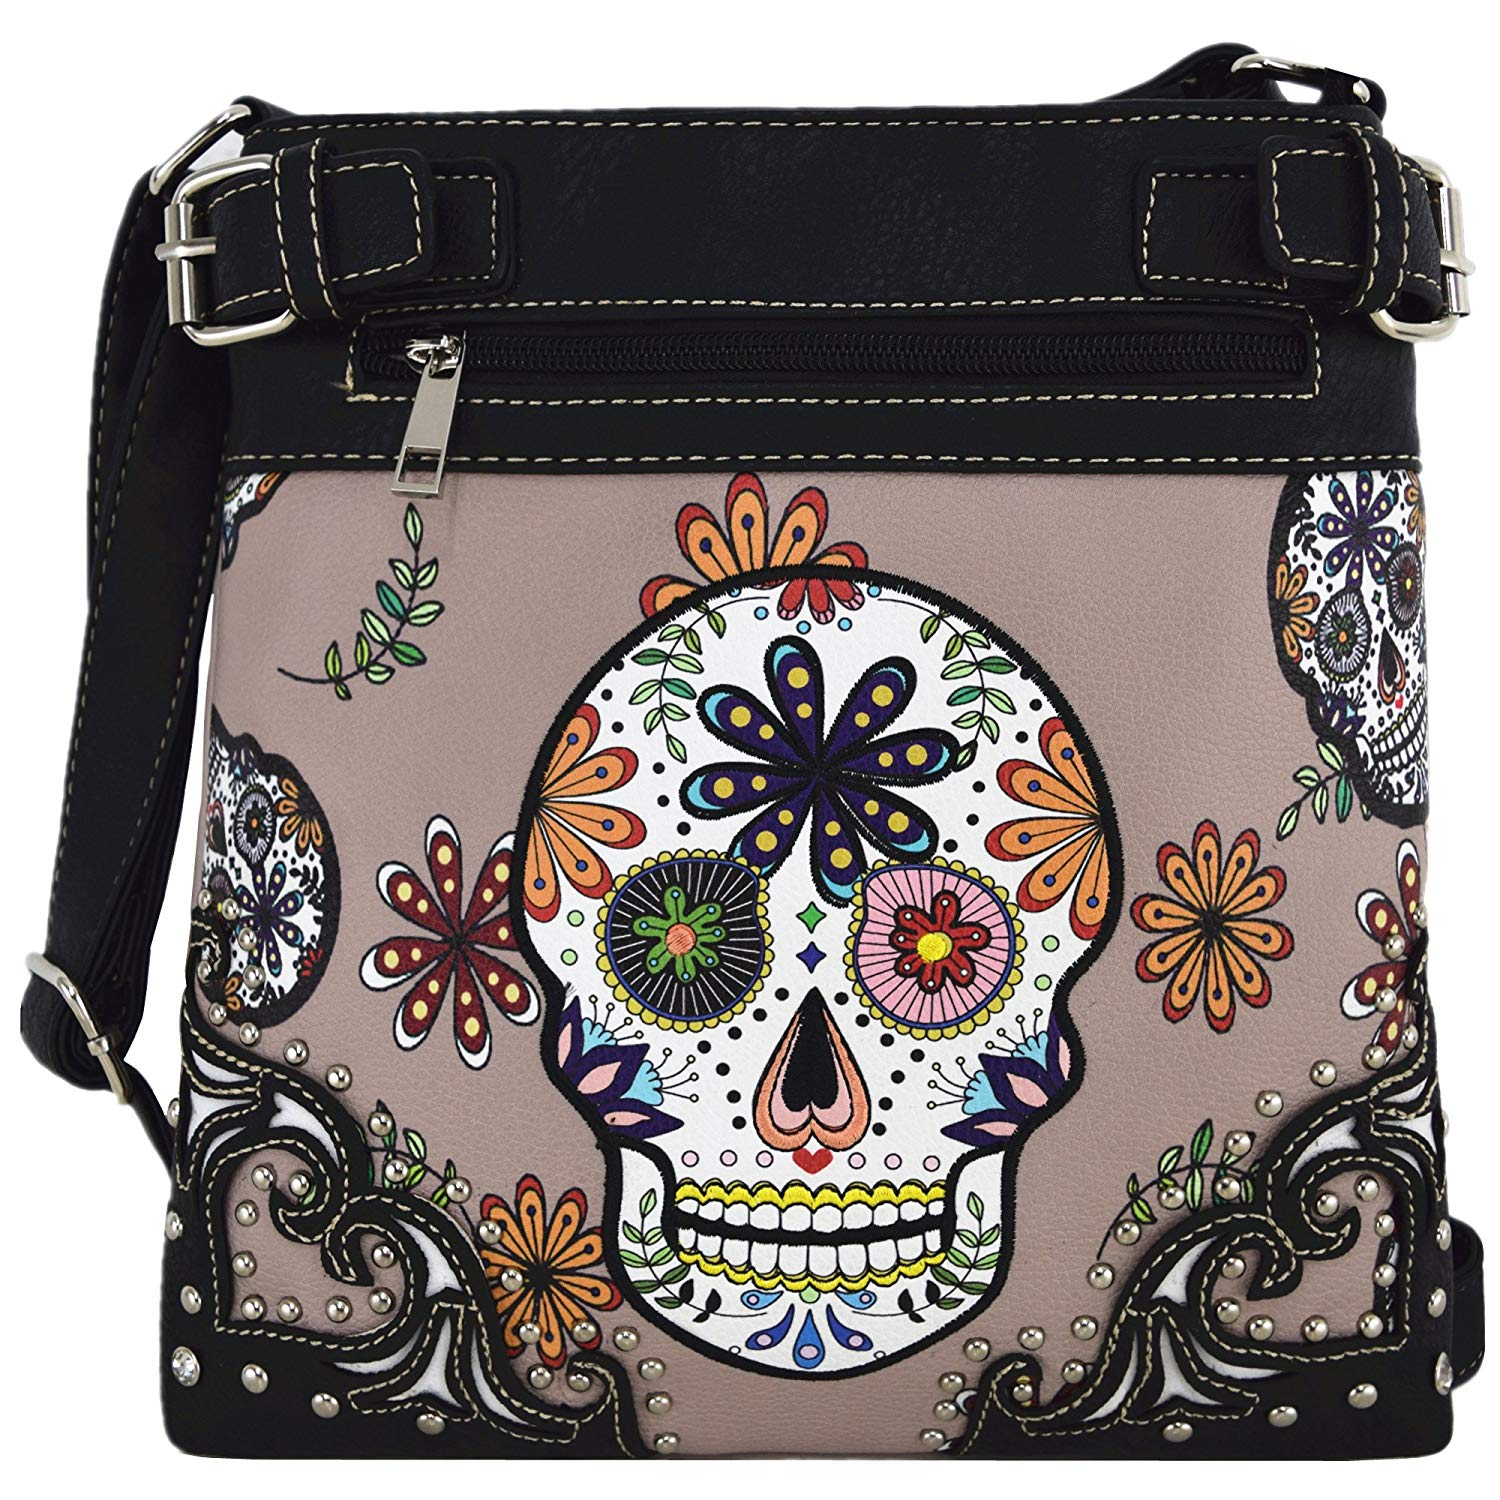 abc048acda Get Quotations · Sugar Skull Day of the Dead Cross Body Handbags Concealed  Carry Purses Country Women Single Shoulder